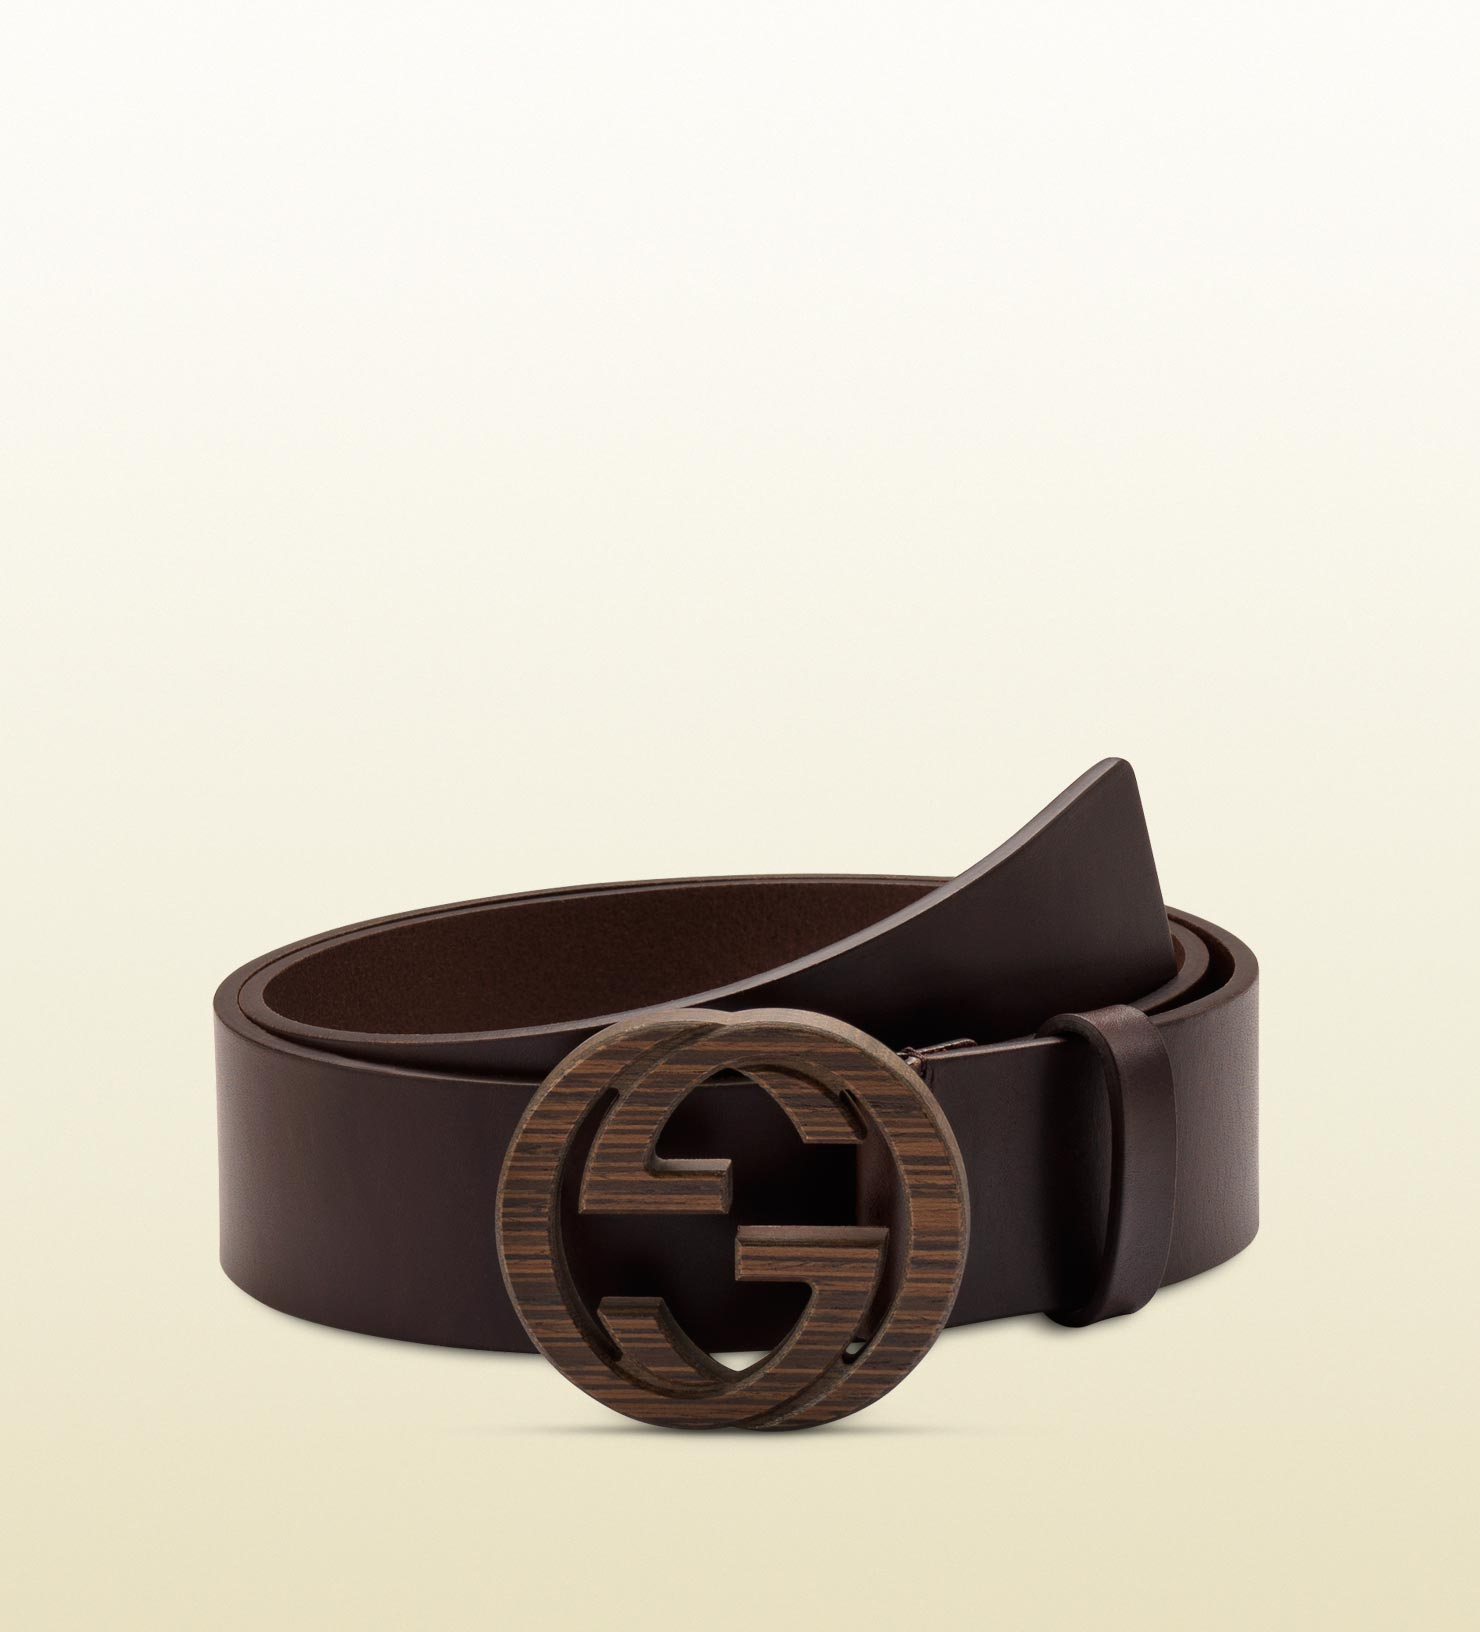 9a5af6a9931e Lyst - Gucci Brown Leather Belt With Interlocking G Buckle in Brown